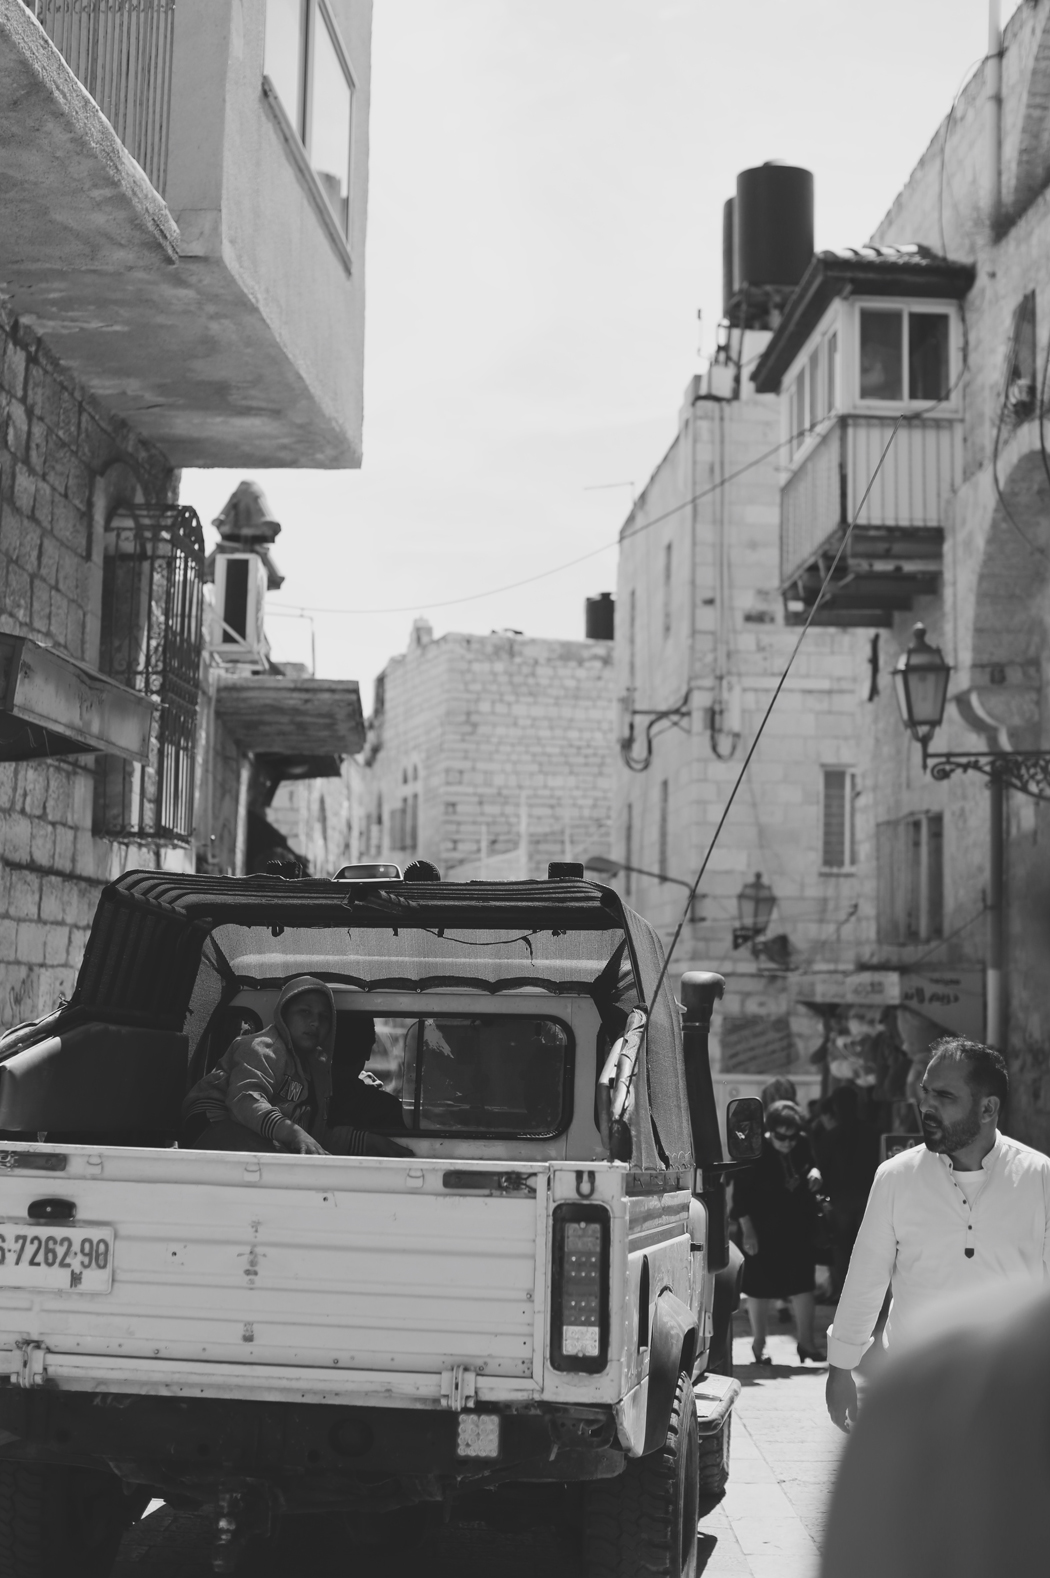 Palestine Visual Diary - A series by Fiona Dinkelbach